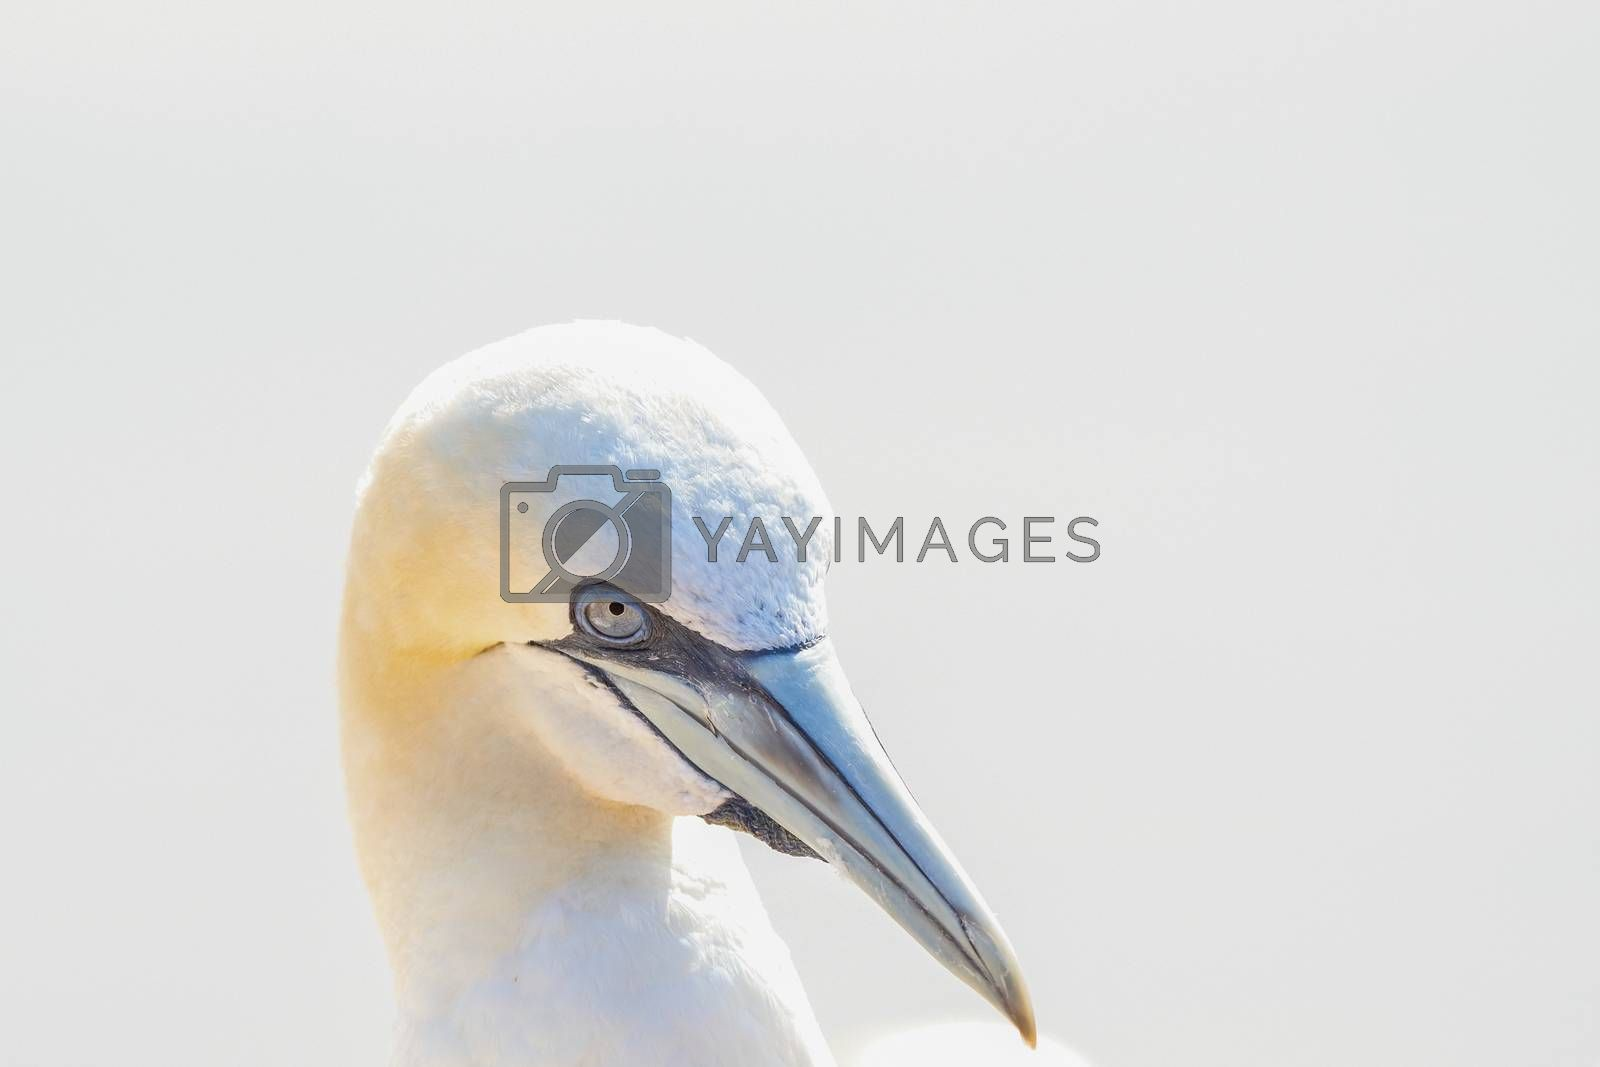 One wild bird head in the wild, Morus bassanus, Northern Gannet on the island of Heligoland on the North Sea in Germany.